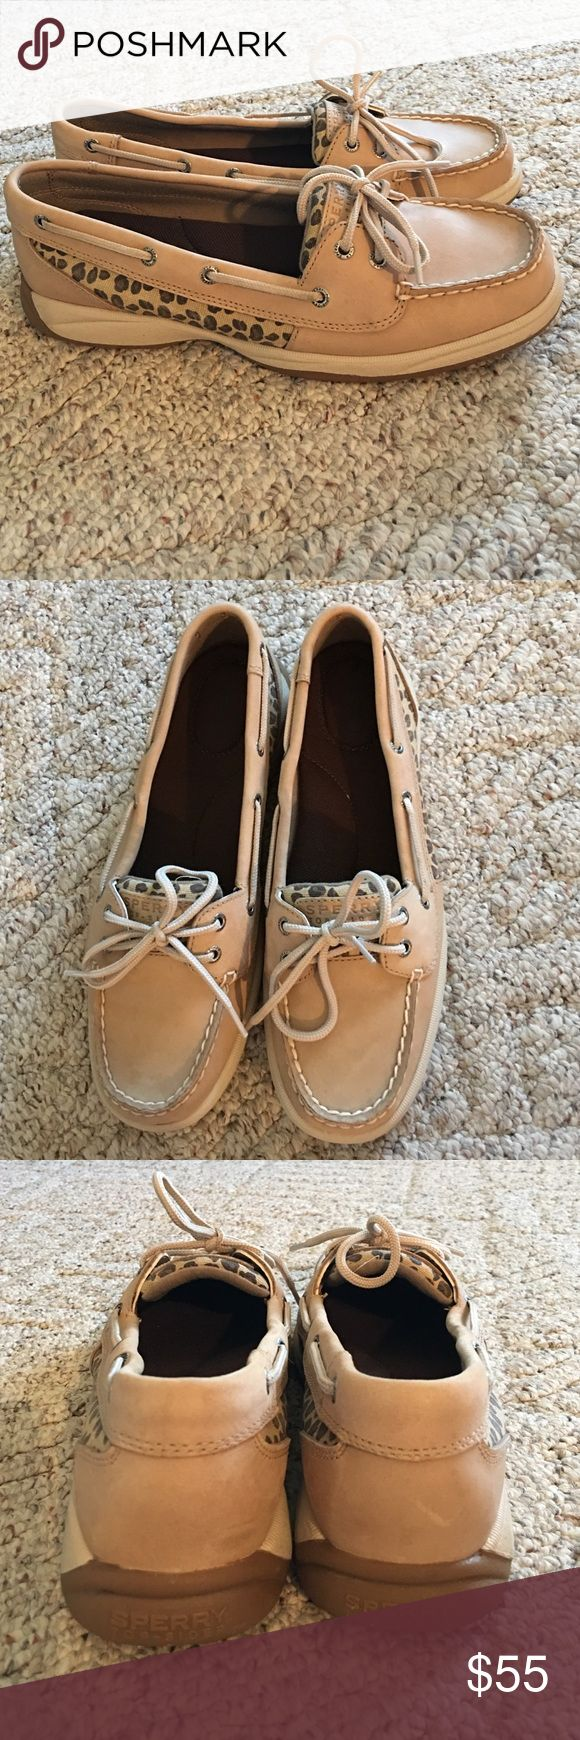 Leopard/tan Sperrys Worn once! In great condition! Sperry Shoes Flats & Loafers